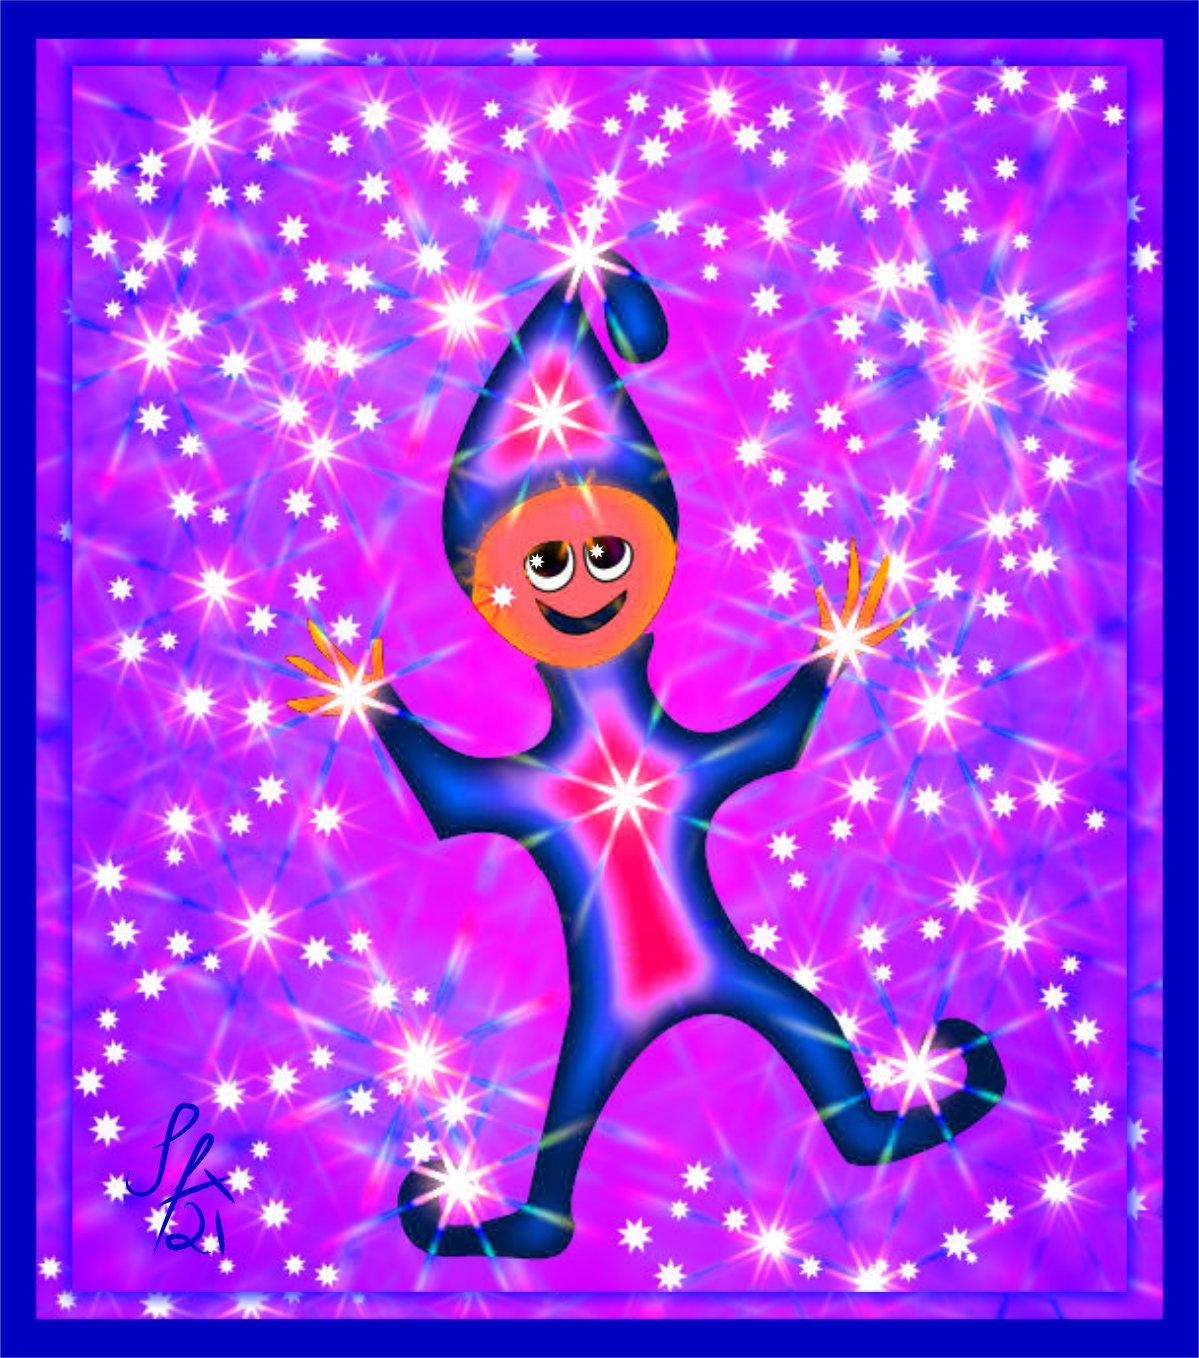 Happy Elf who grants wishes in blue and purple with stars